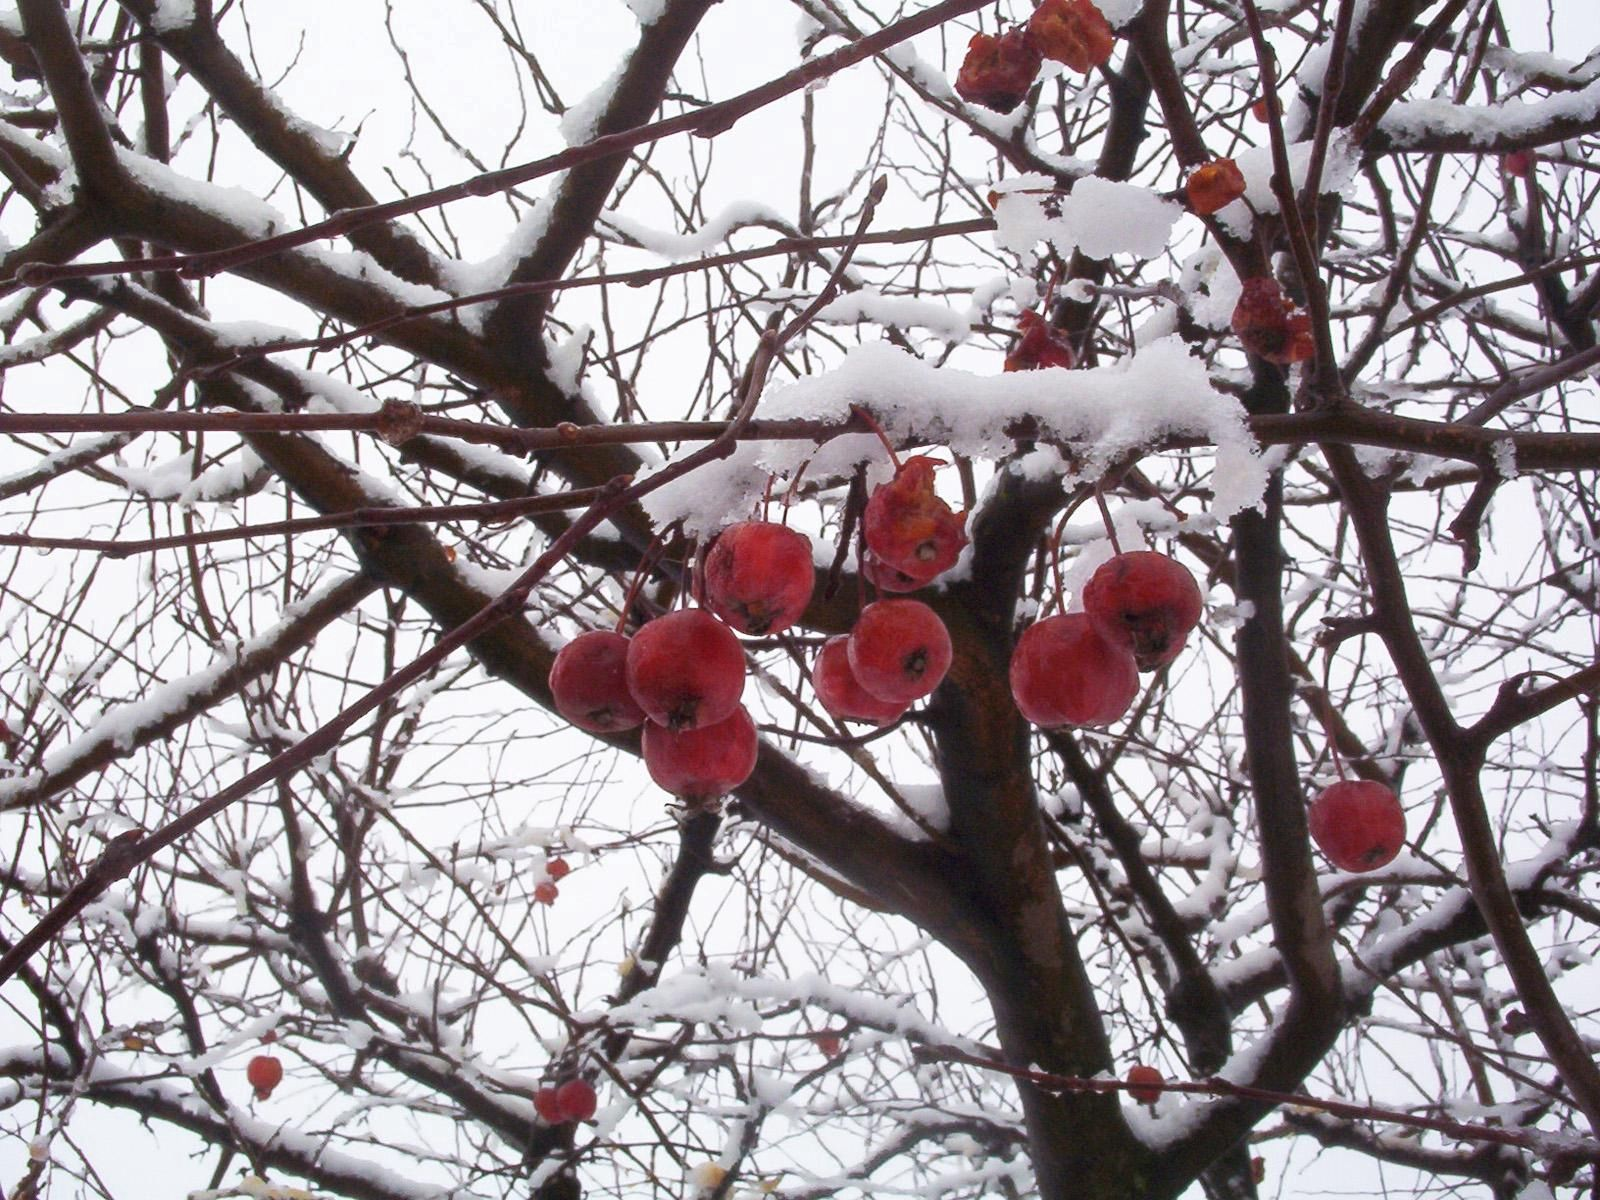 76514 download wallpaper Nature, Rowan, Branches, Branch, Berry, Snow screensavers and pictures for free